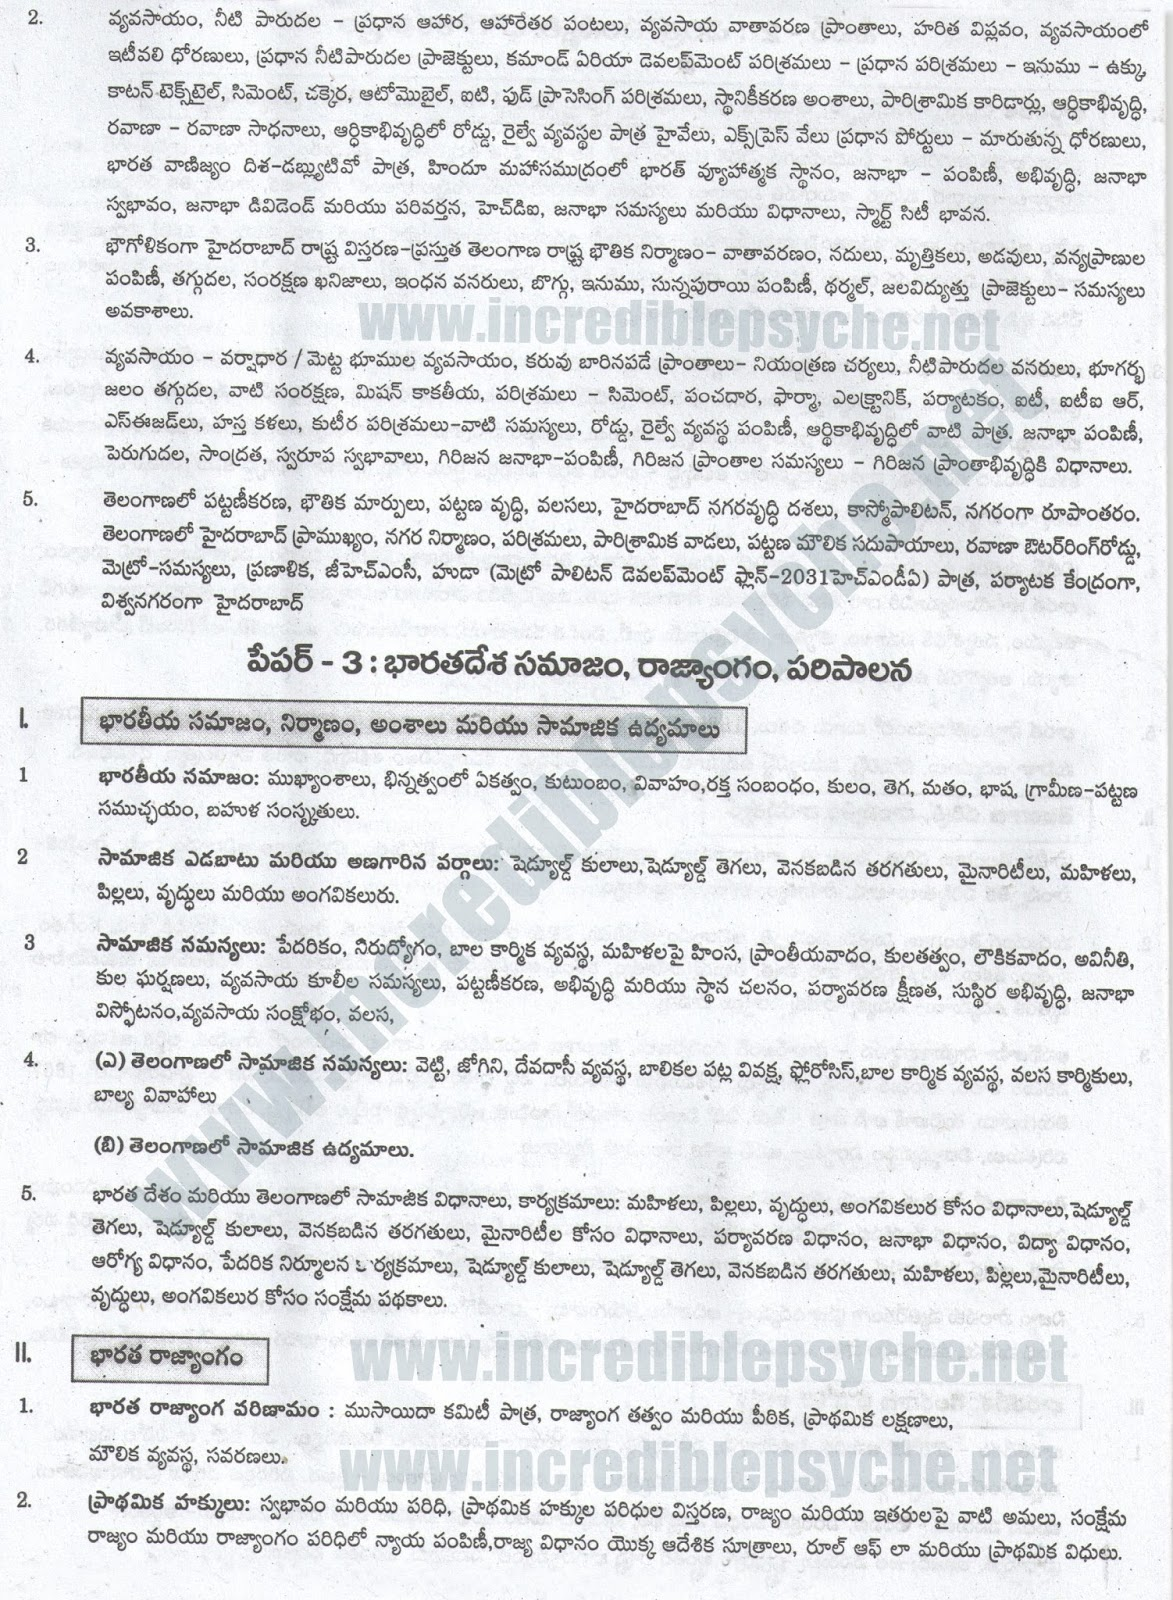 telangana tspsc group 1 exam syllabus in telugu with scheme of exam pattern detailed pattern 3